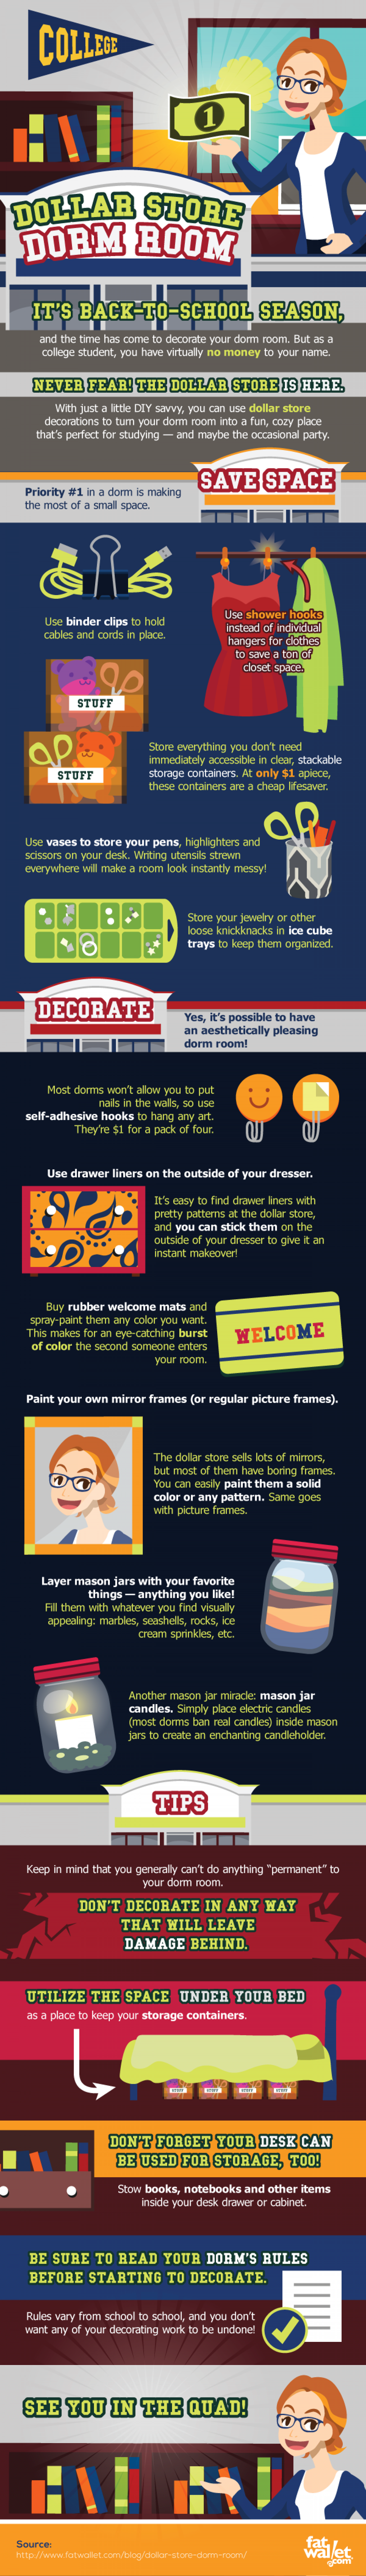 Save Money During the First Year in College Infographic